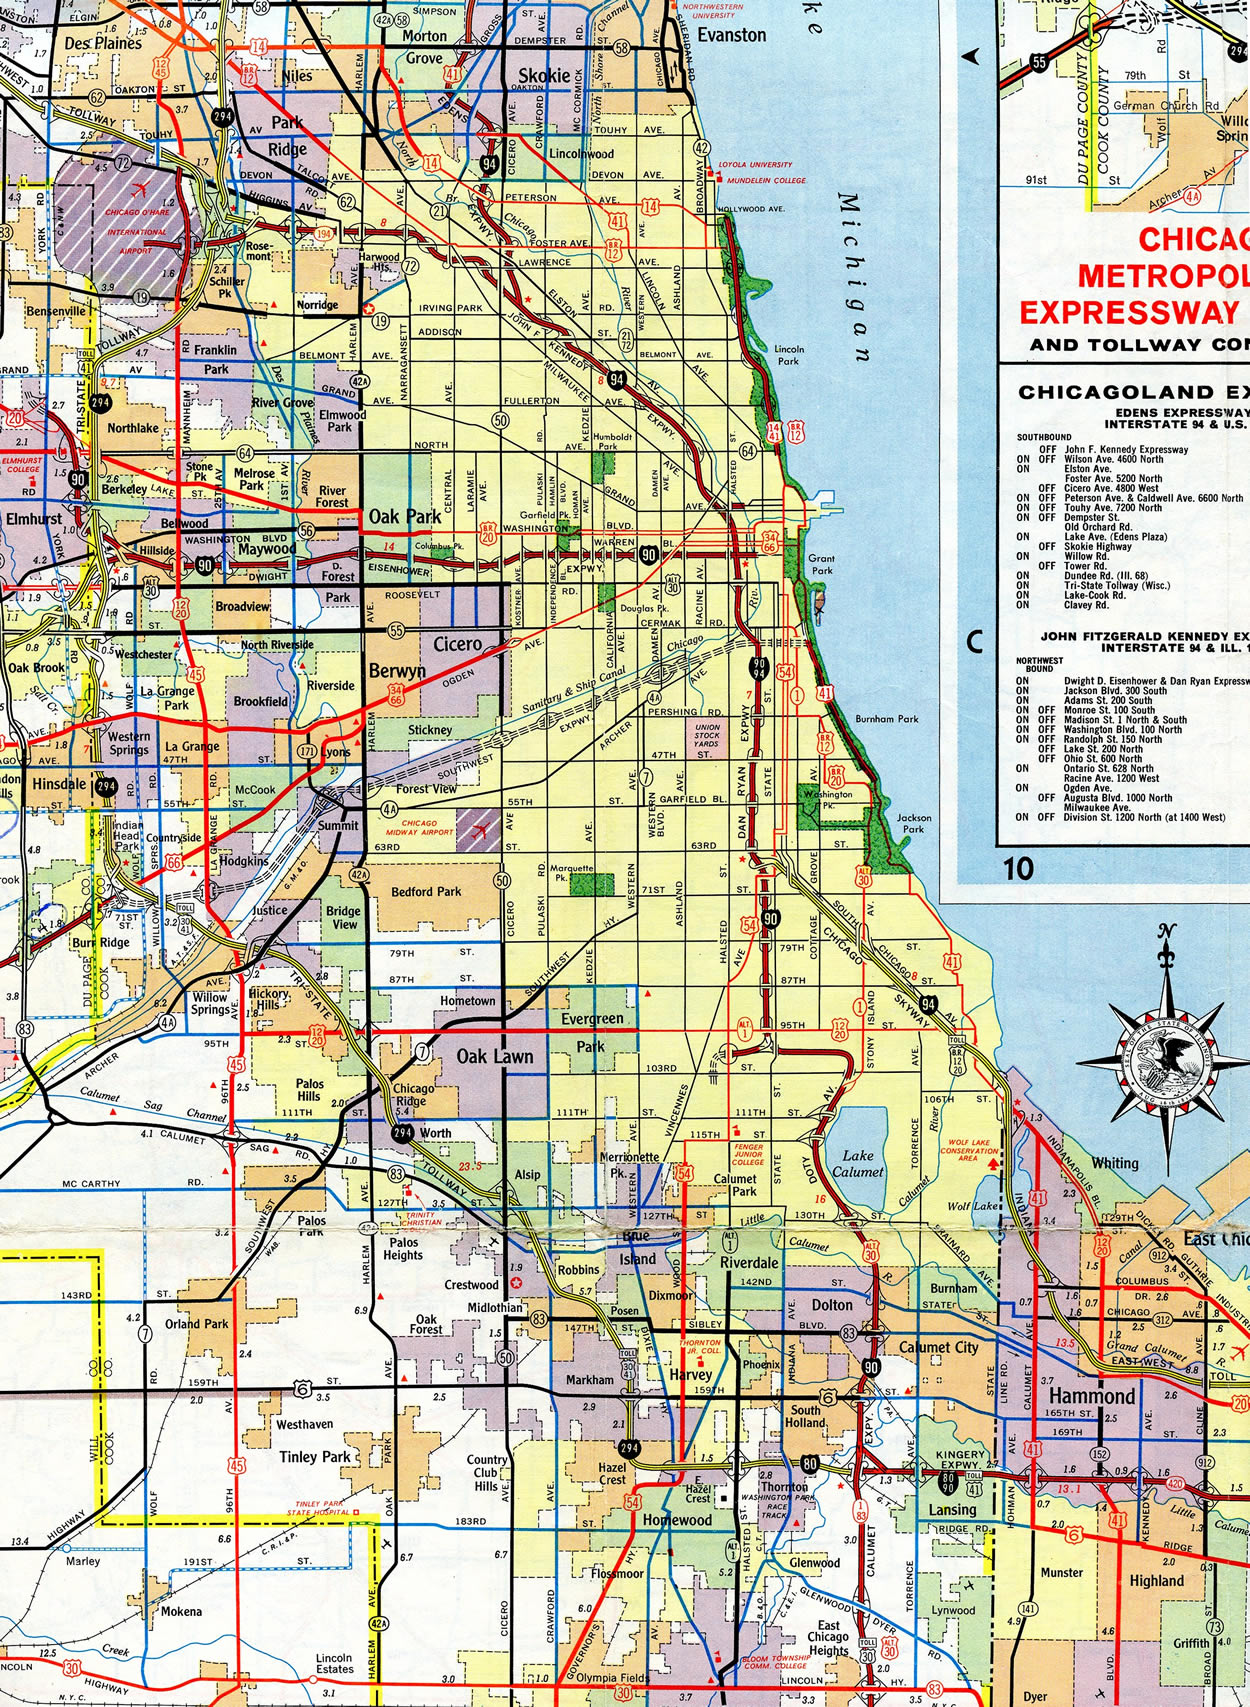 chicago-il-1964 I Road Map on highway 287 map, i-94 illinois map, i 94 toll map, i-94 milwaukee map, i 94 united states, i 94 east map, i-94 wisconsin map, i 90 road map, i 80 road map,